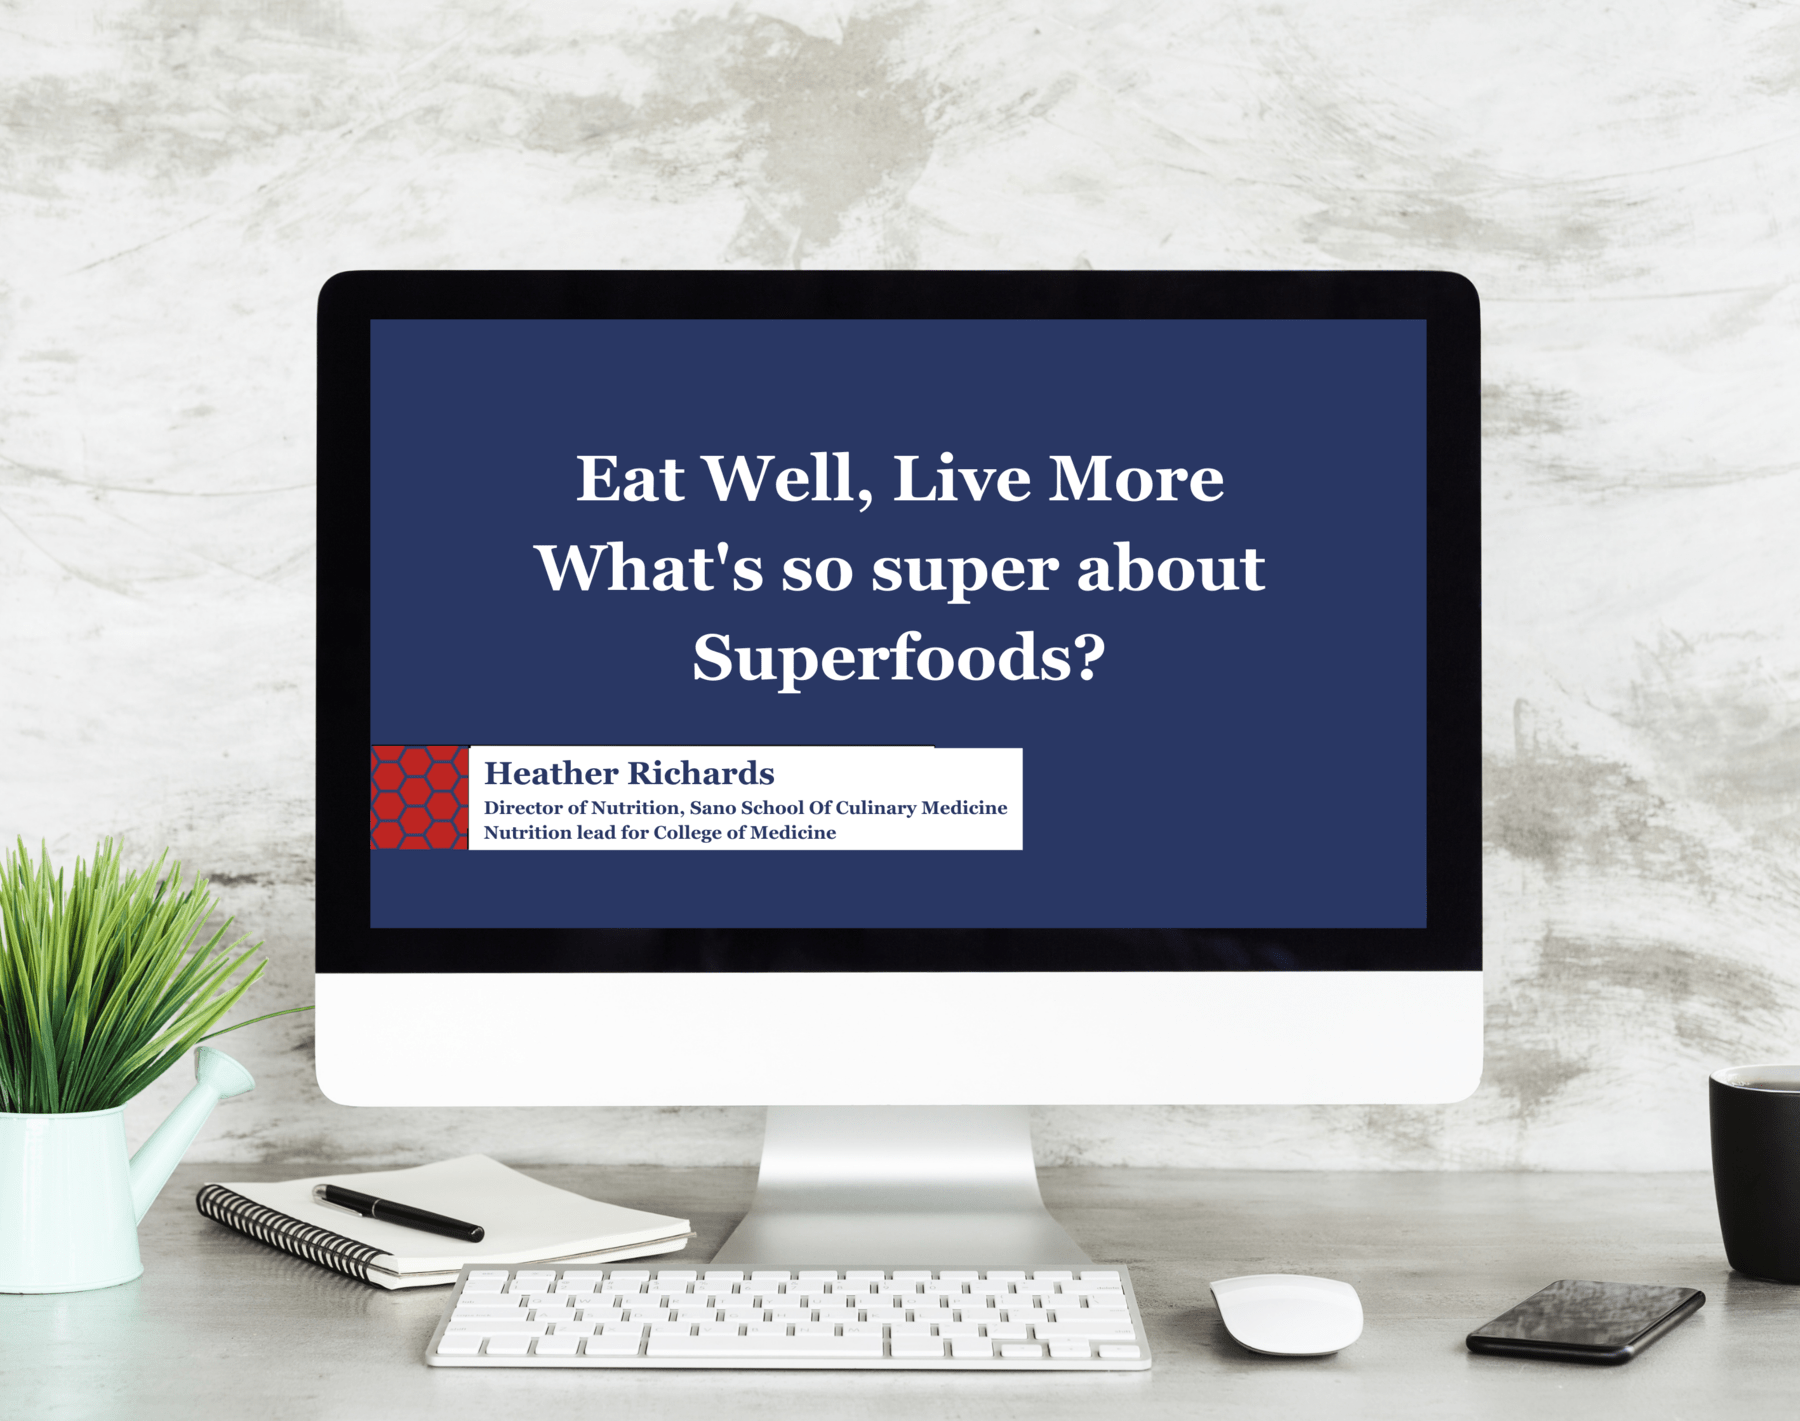 Computer showing 'What's so super about superfoods' webinar